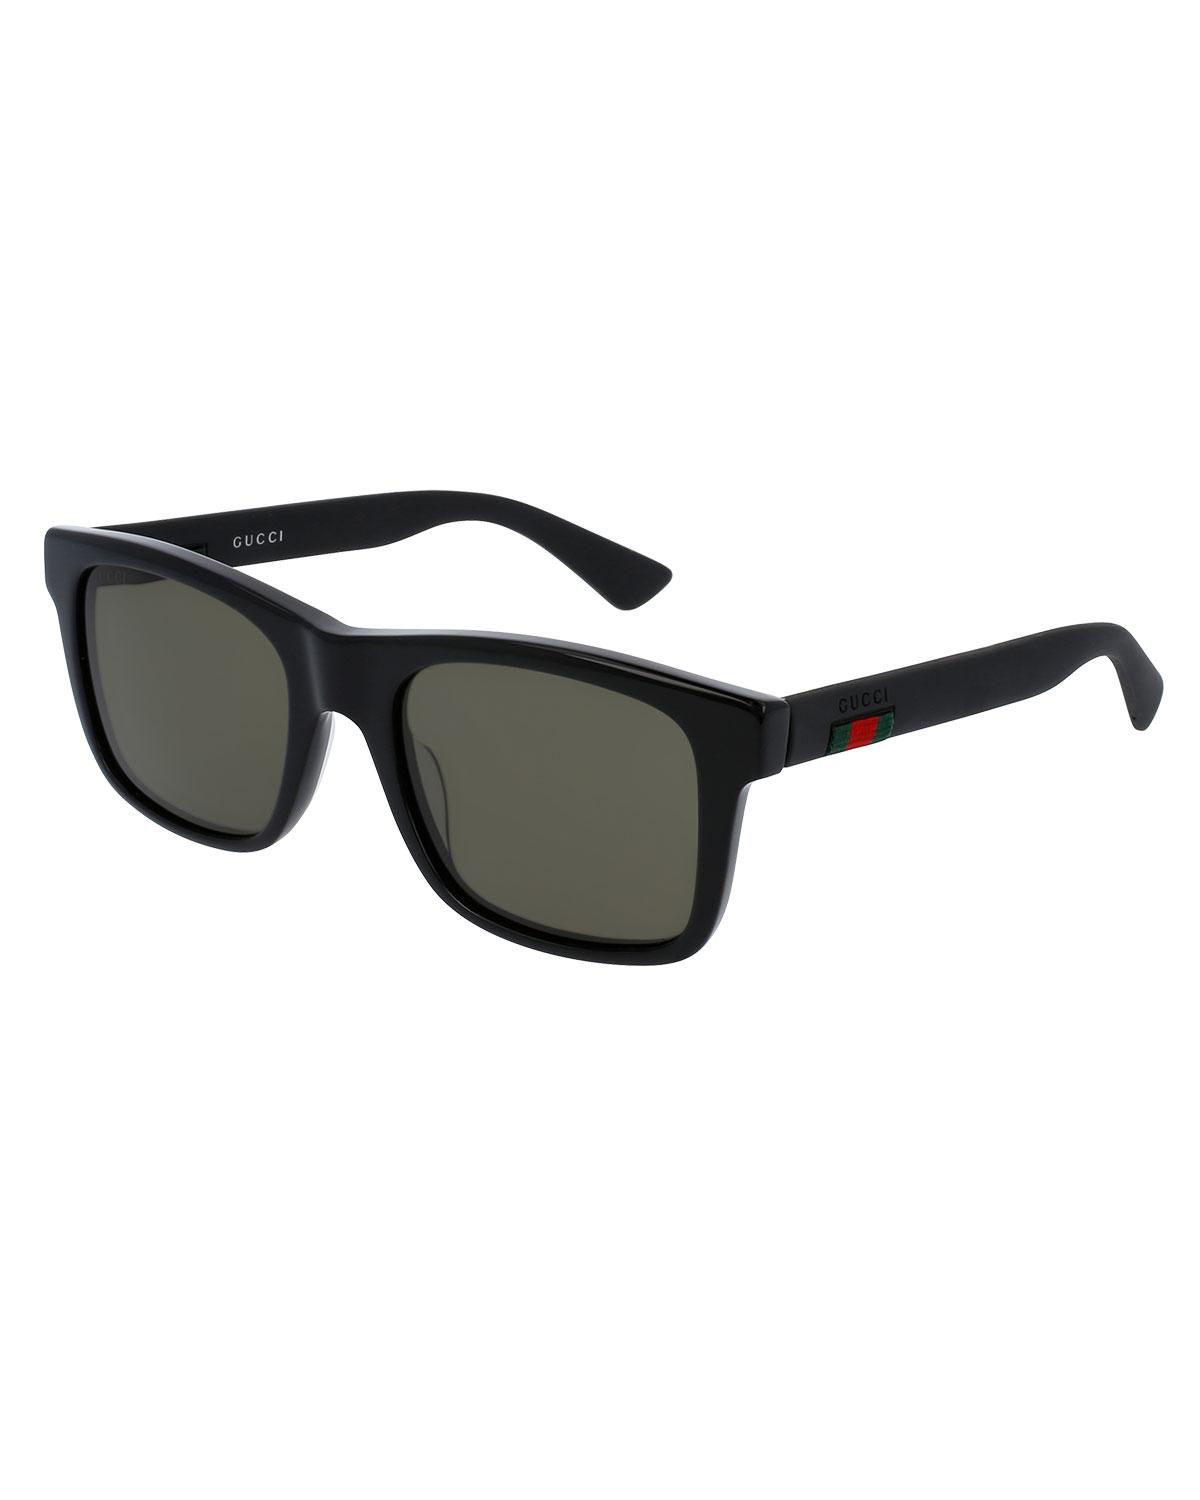 0e65bdabd5251 Lyst - Gucci Acetate Rectangular Sunglasses W web Detail in Black